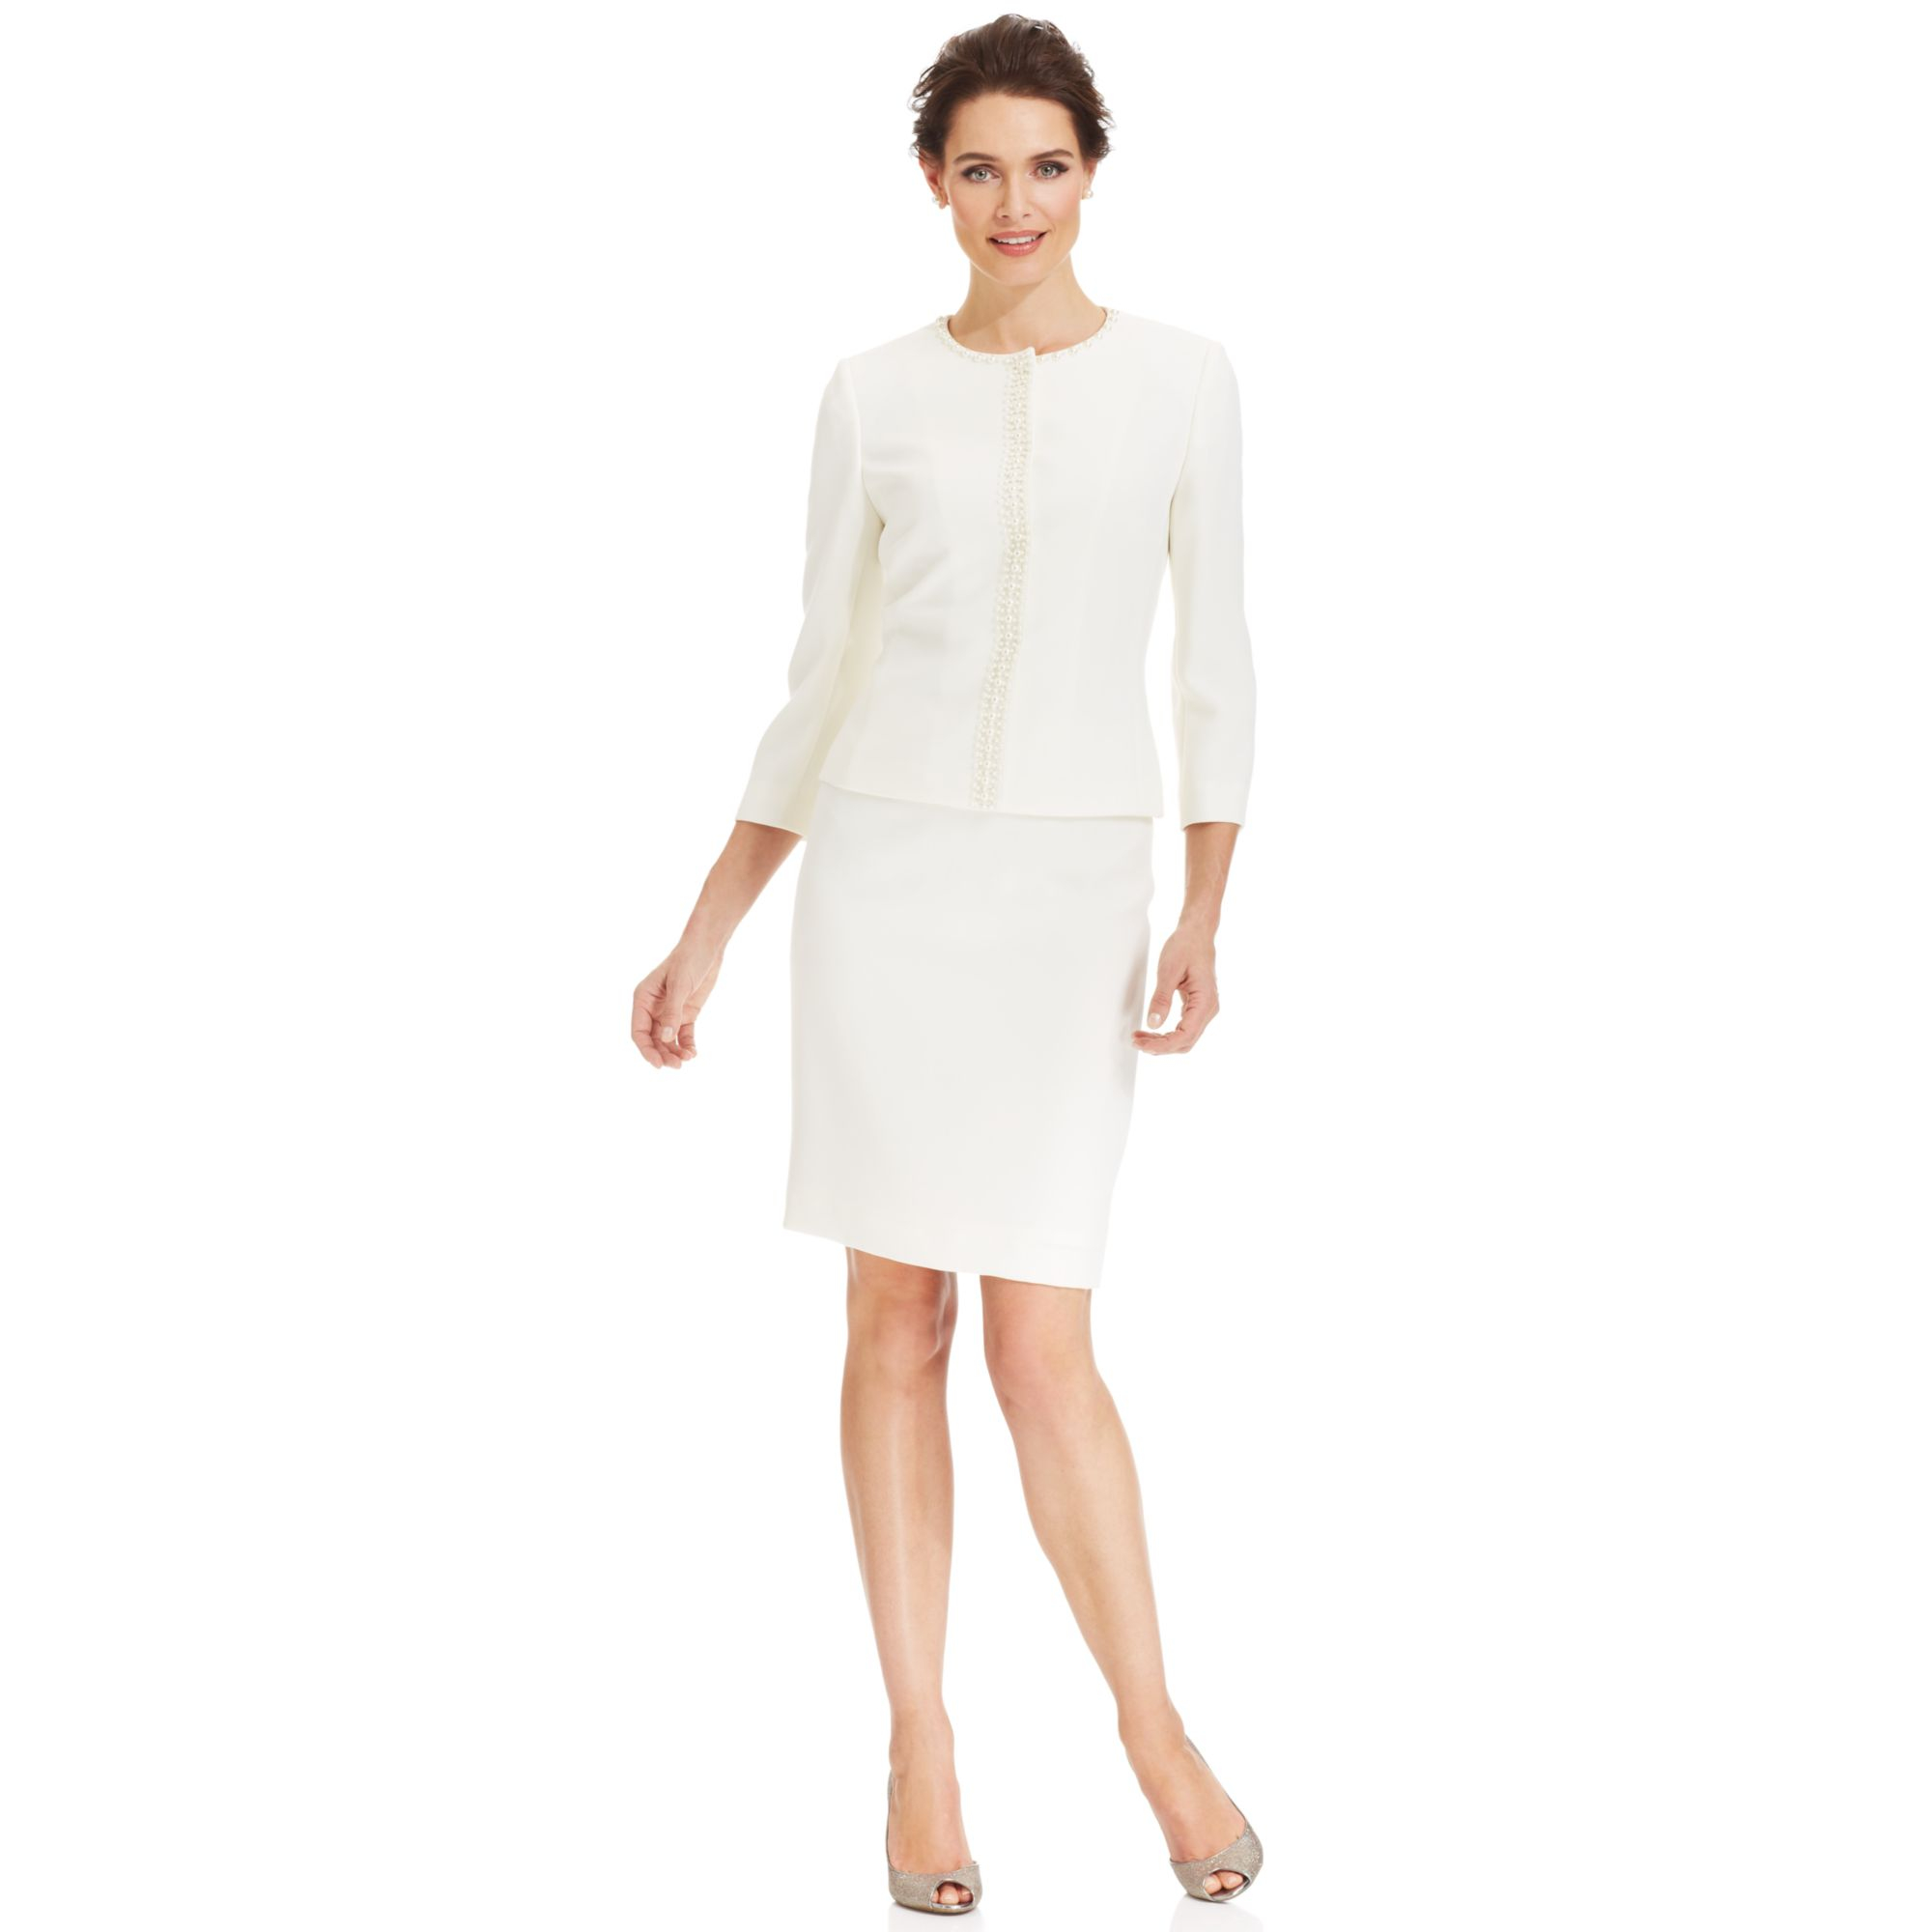 a61ef7c8d453 Tahari By Asl Collarless Beaded Skirt Suit in White - Lyst